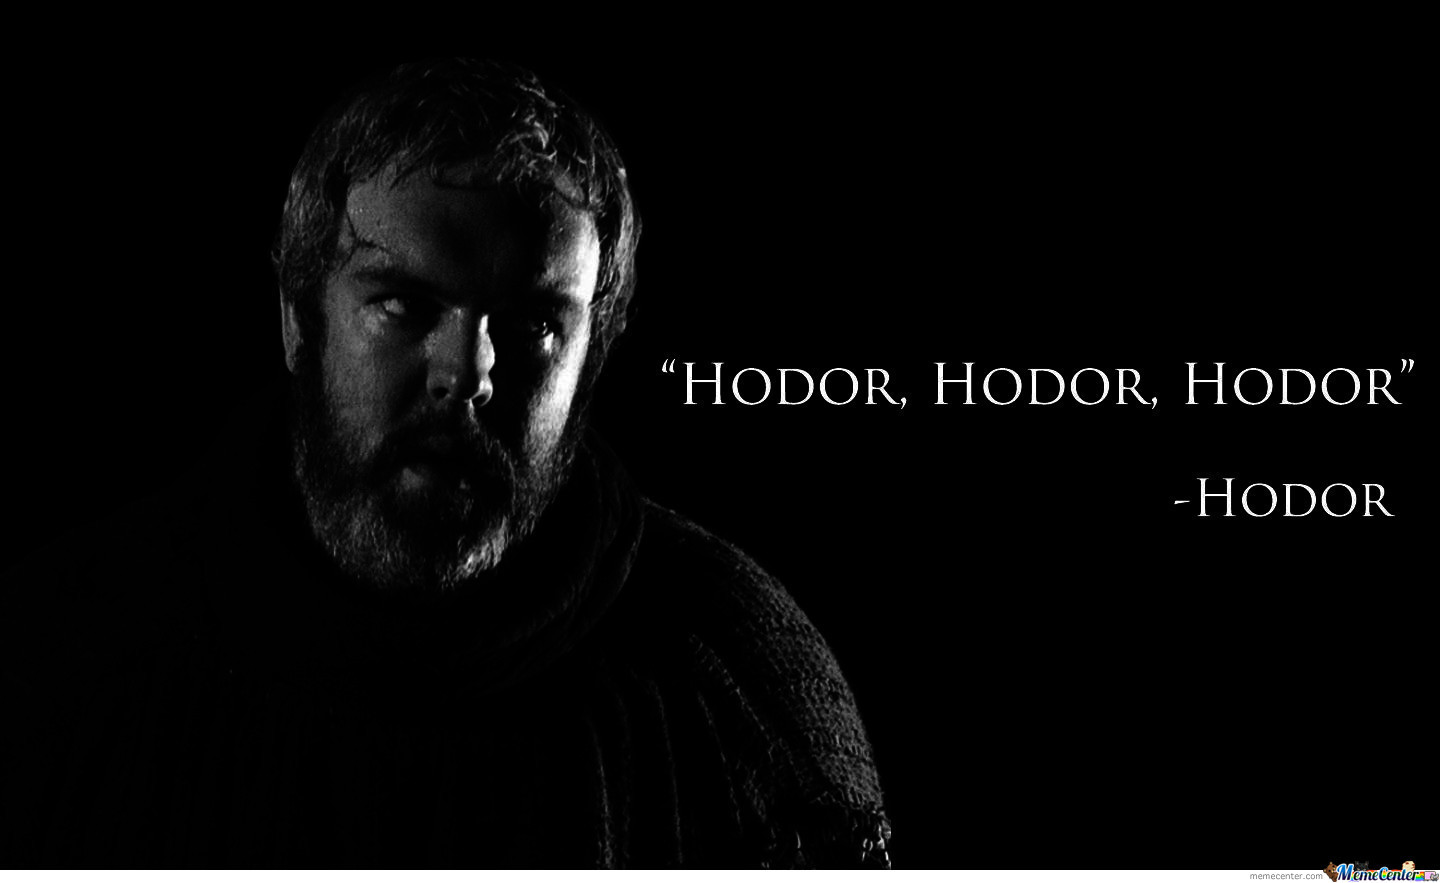 Wise Words From Hodor